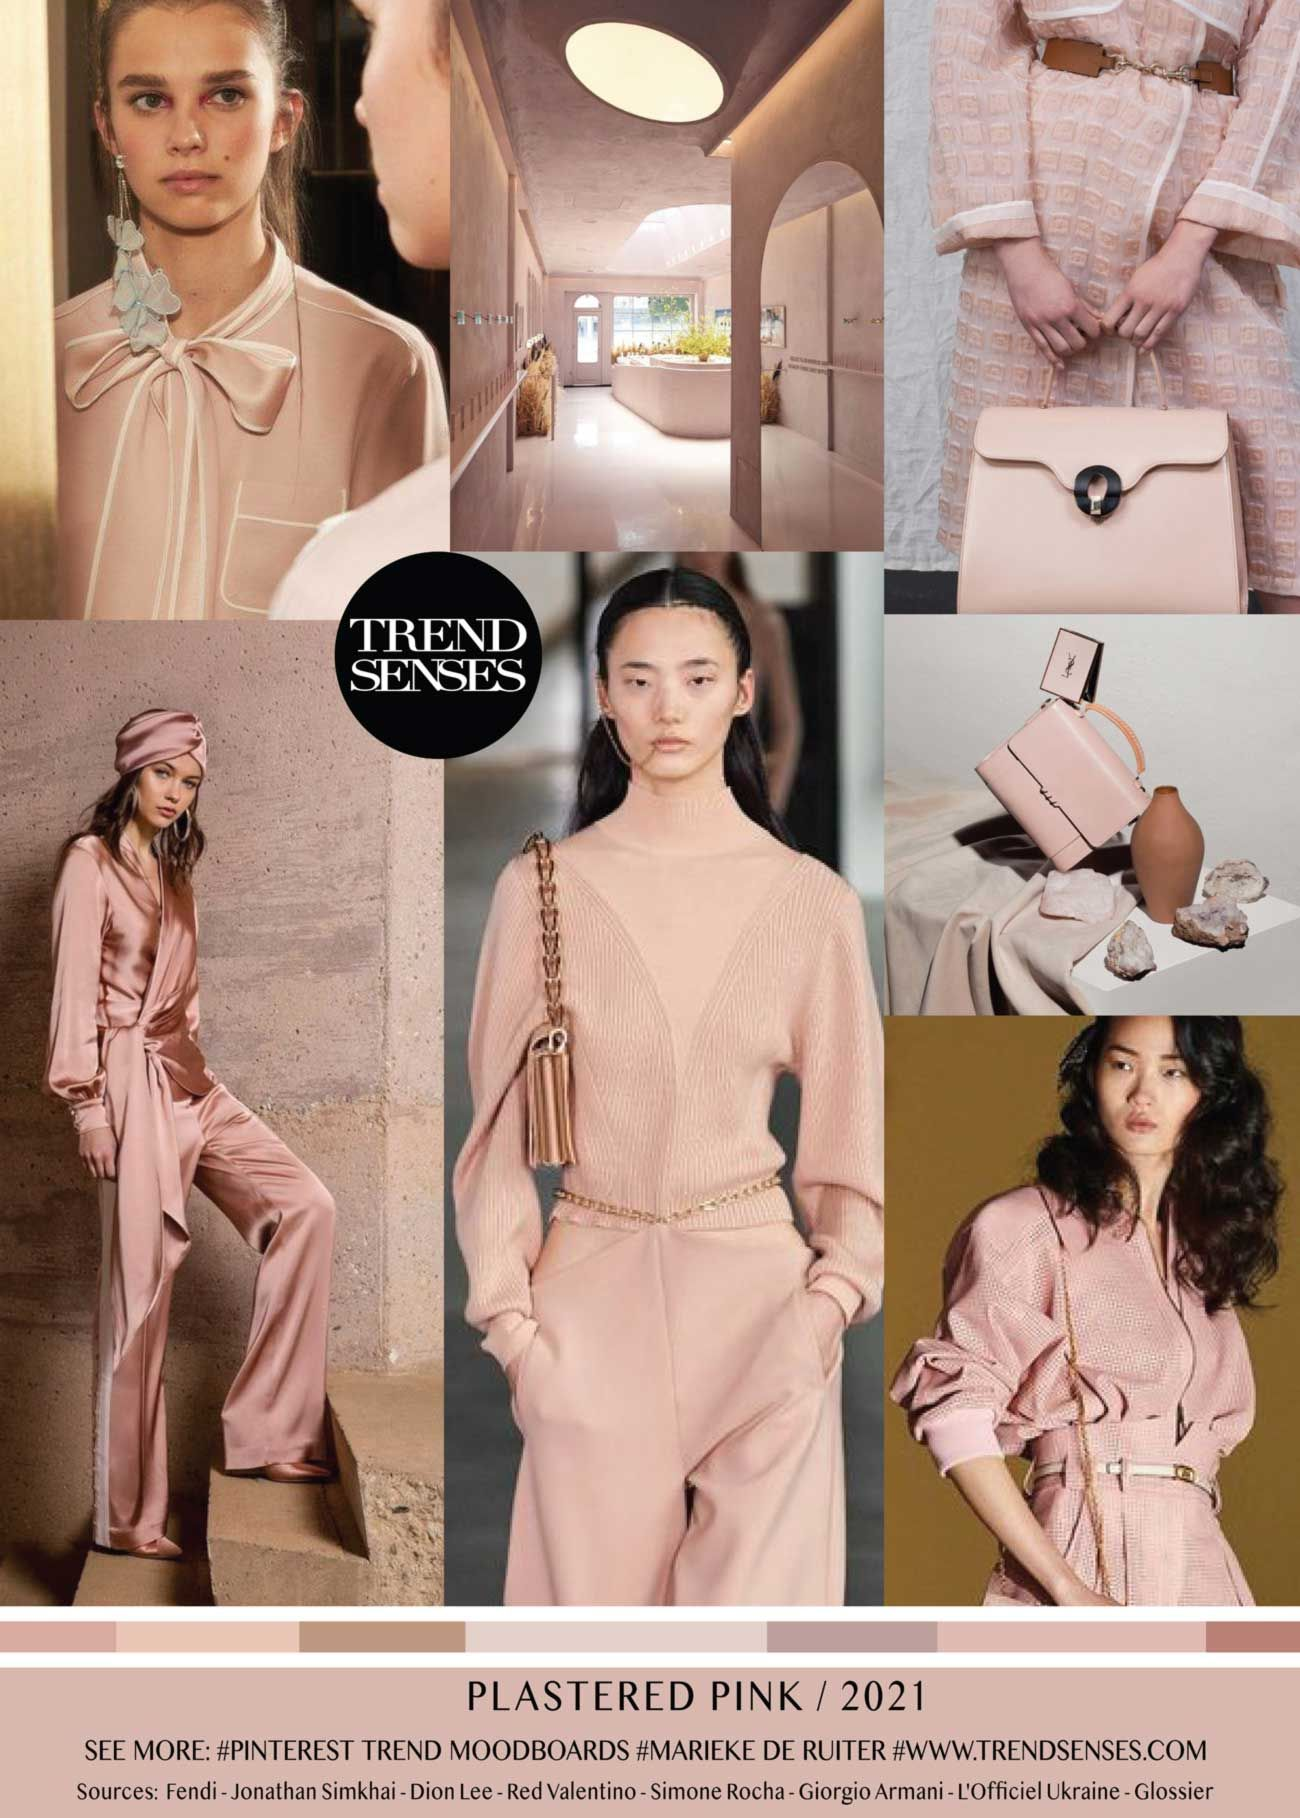 Trendmoodboards – Trendsenses  Fashion trending moodboard, Color